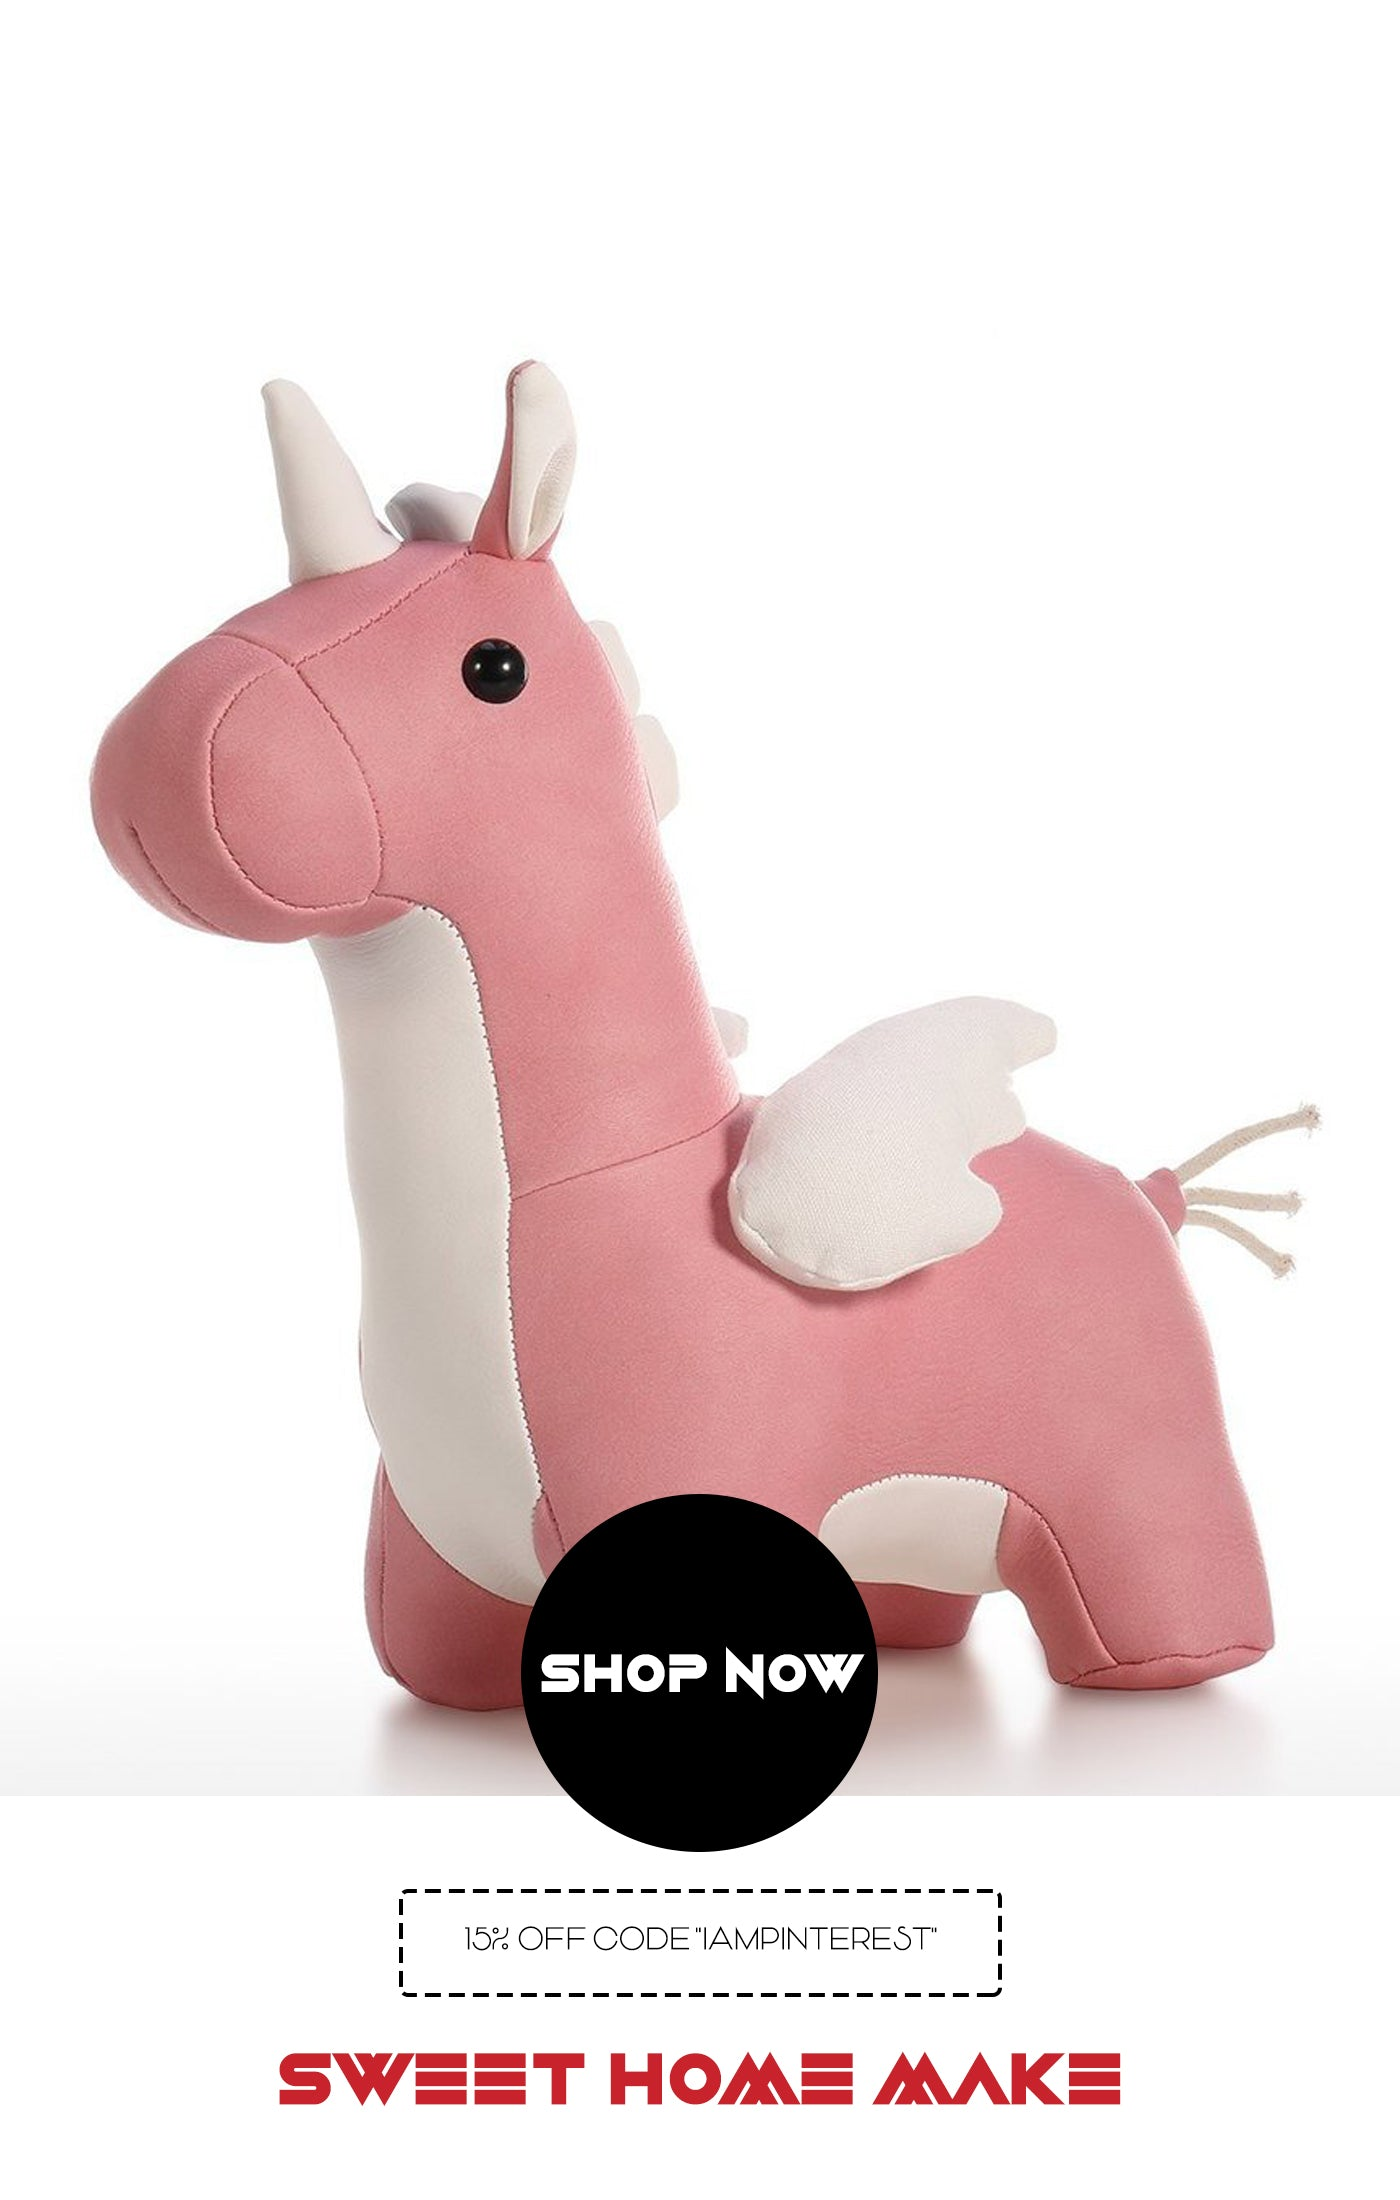 Unicorn Toys For Nursery and Kids as Online Store